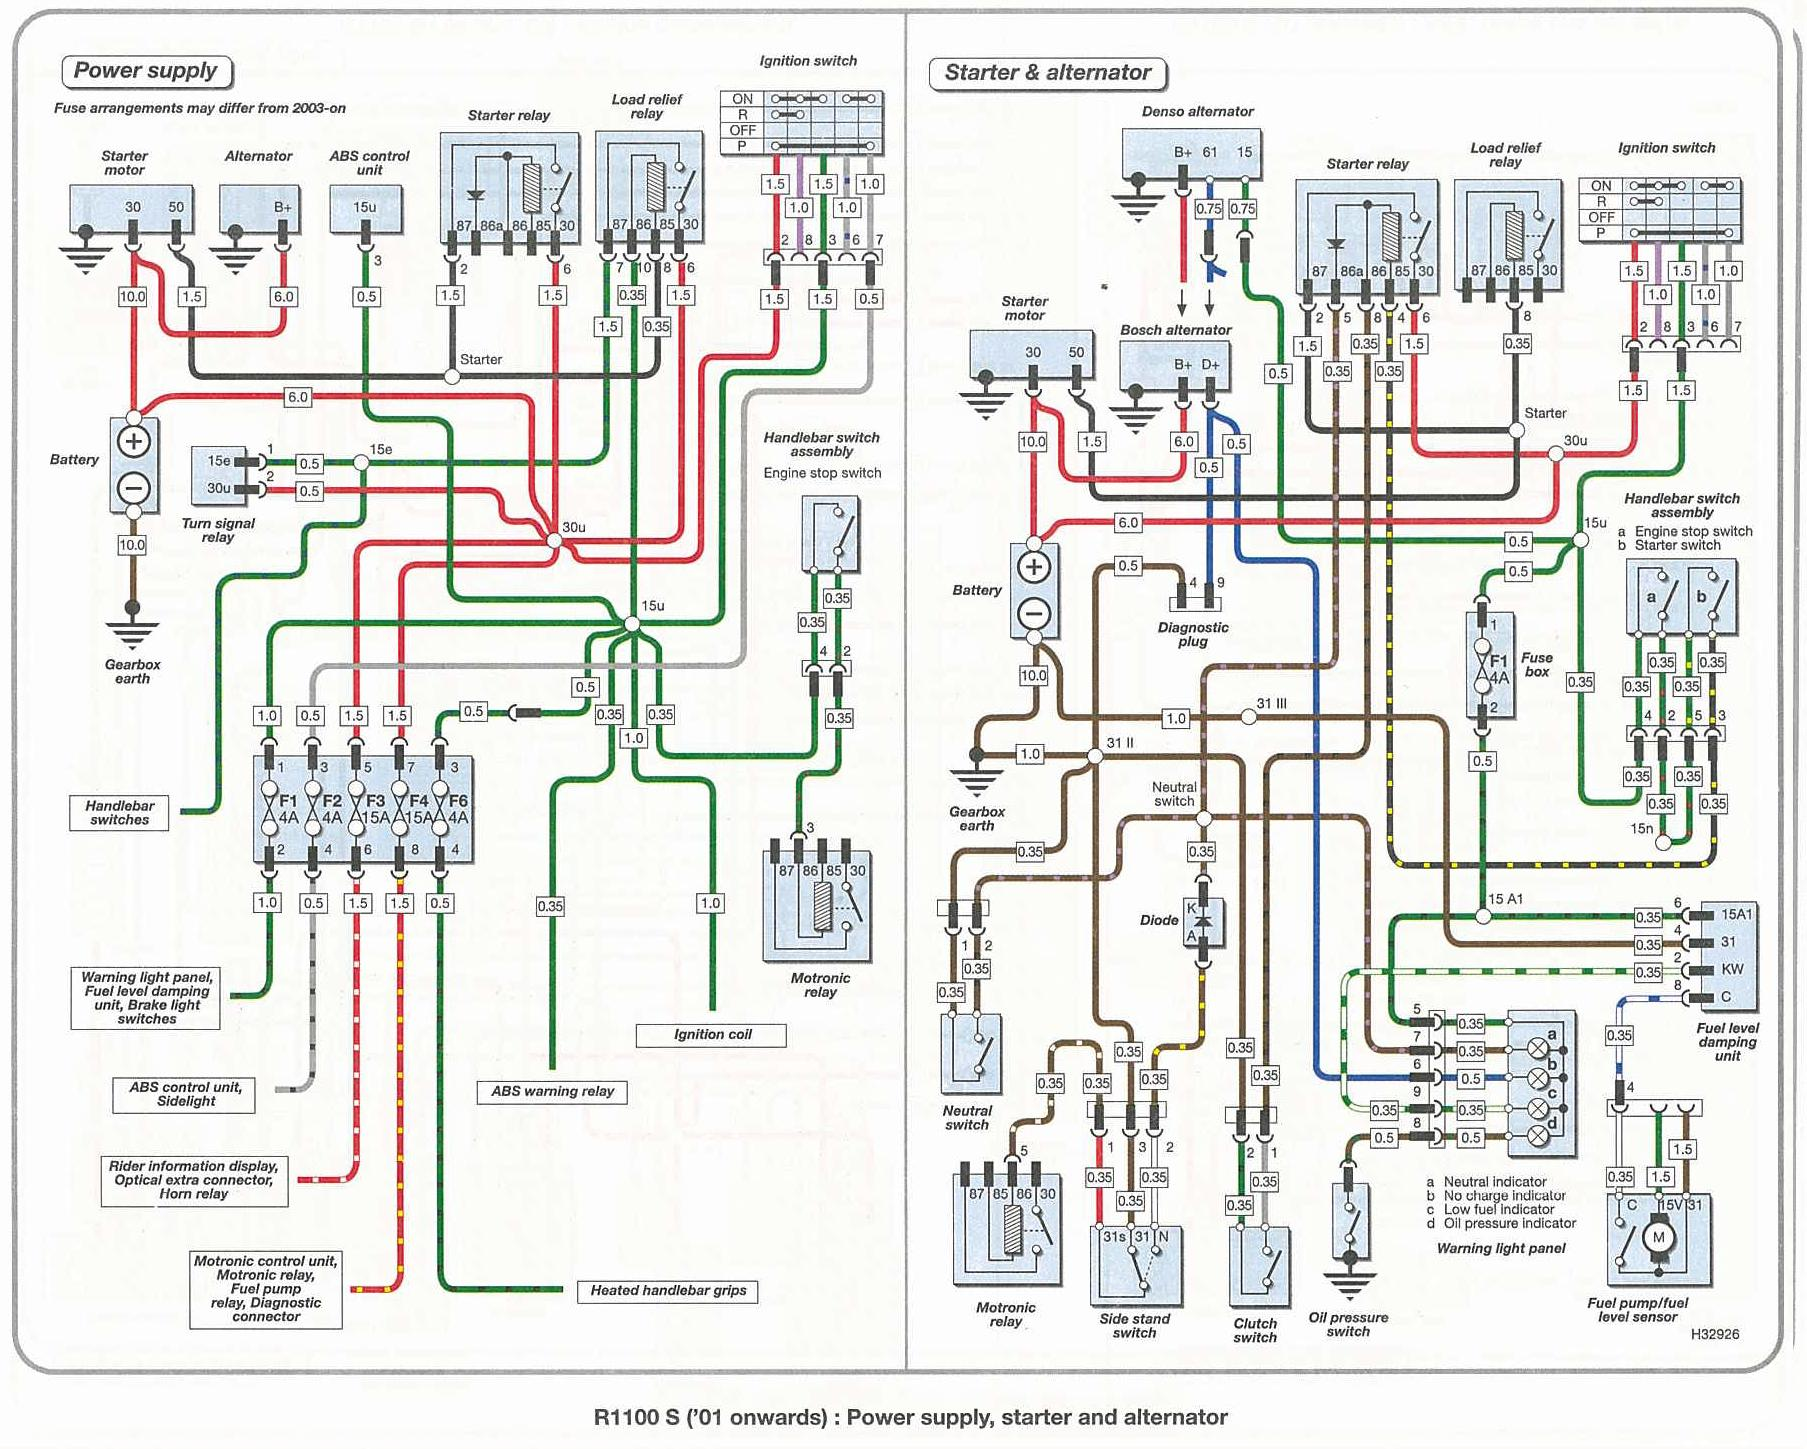 wiring05 2005 bmw f650gs wiring diagram cbr600f4i wiring diagram \u2022 wiring micom p442 wiring diagram at couponss.co